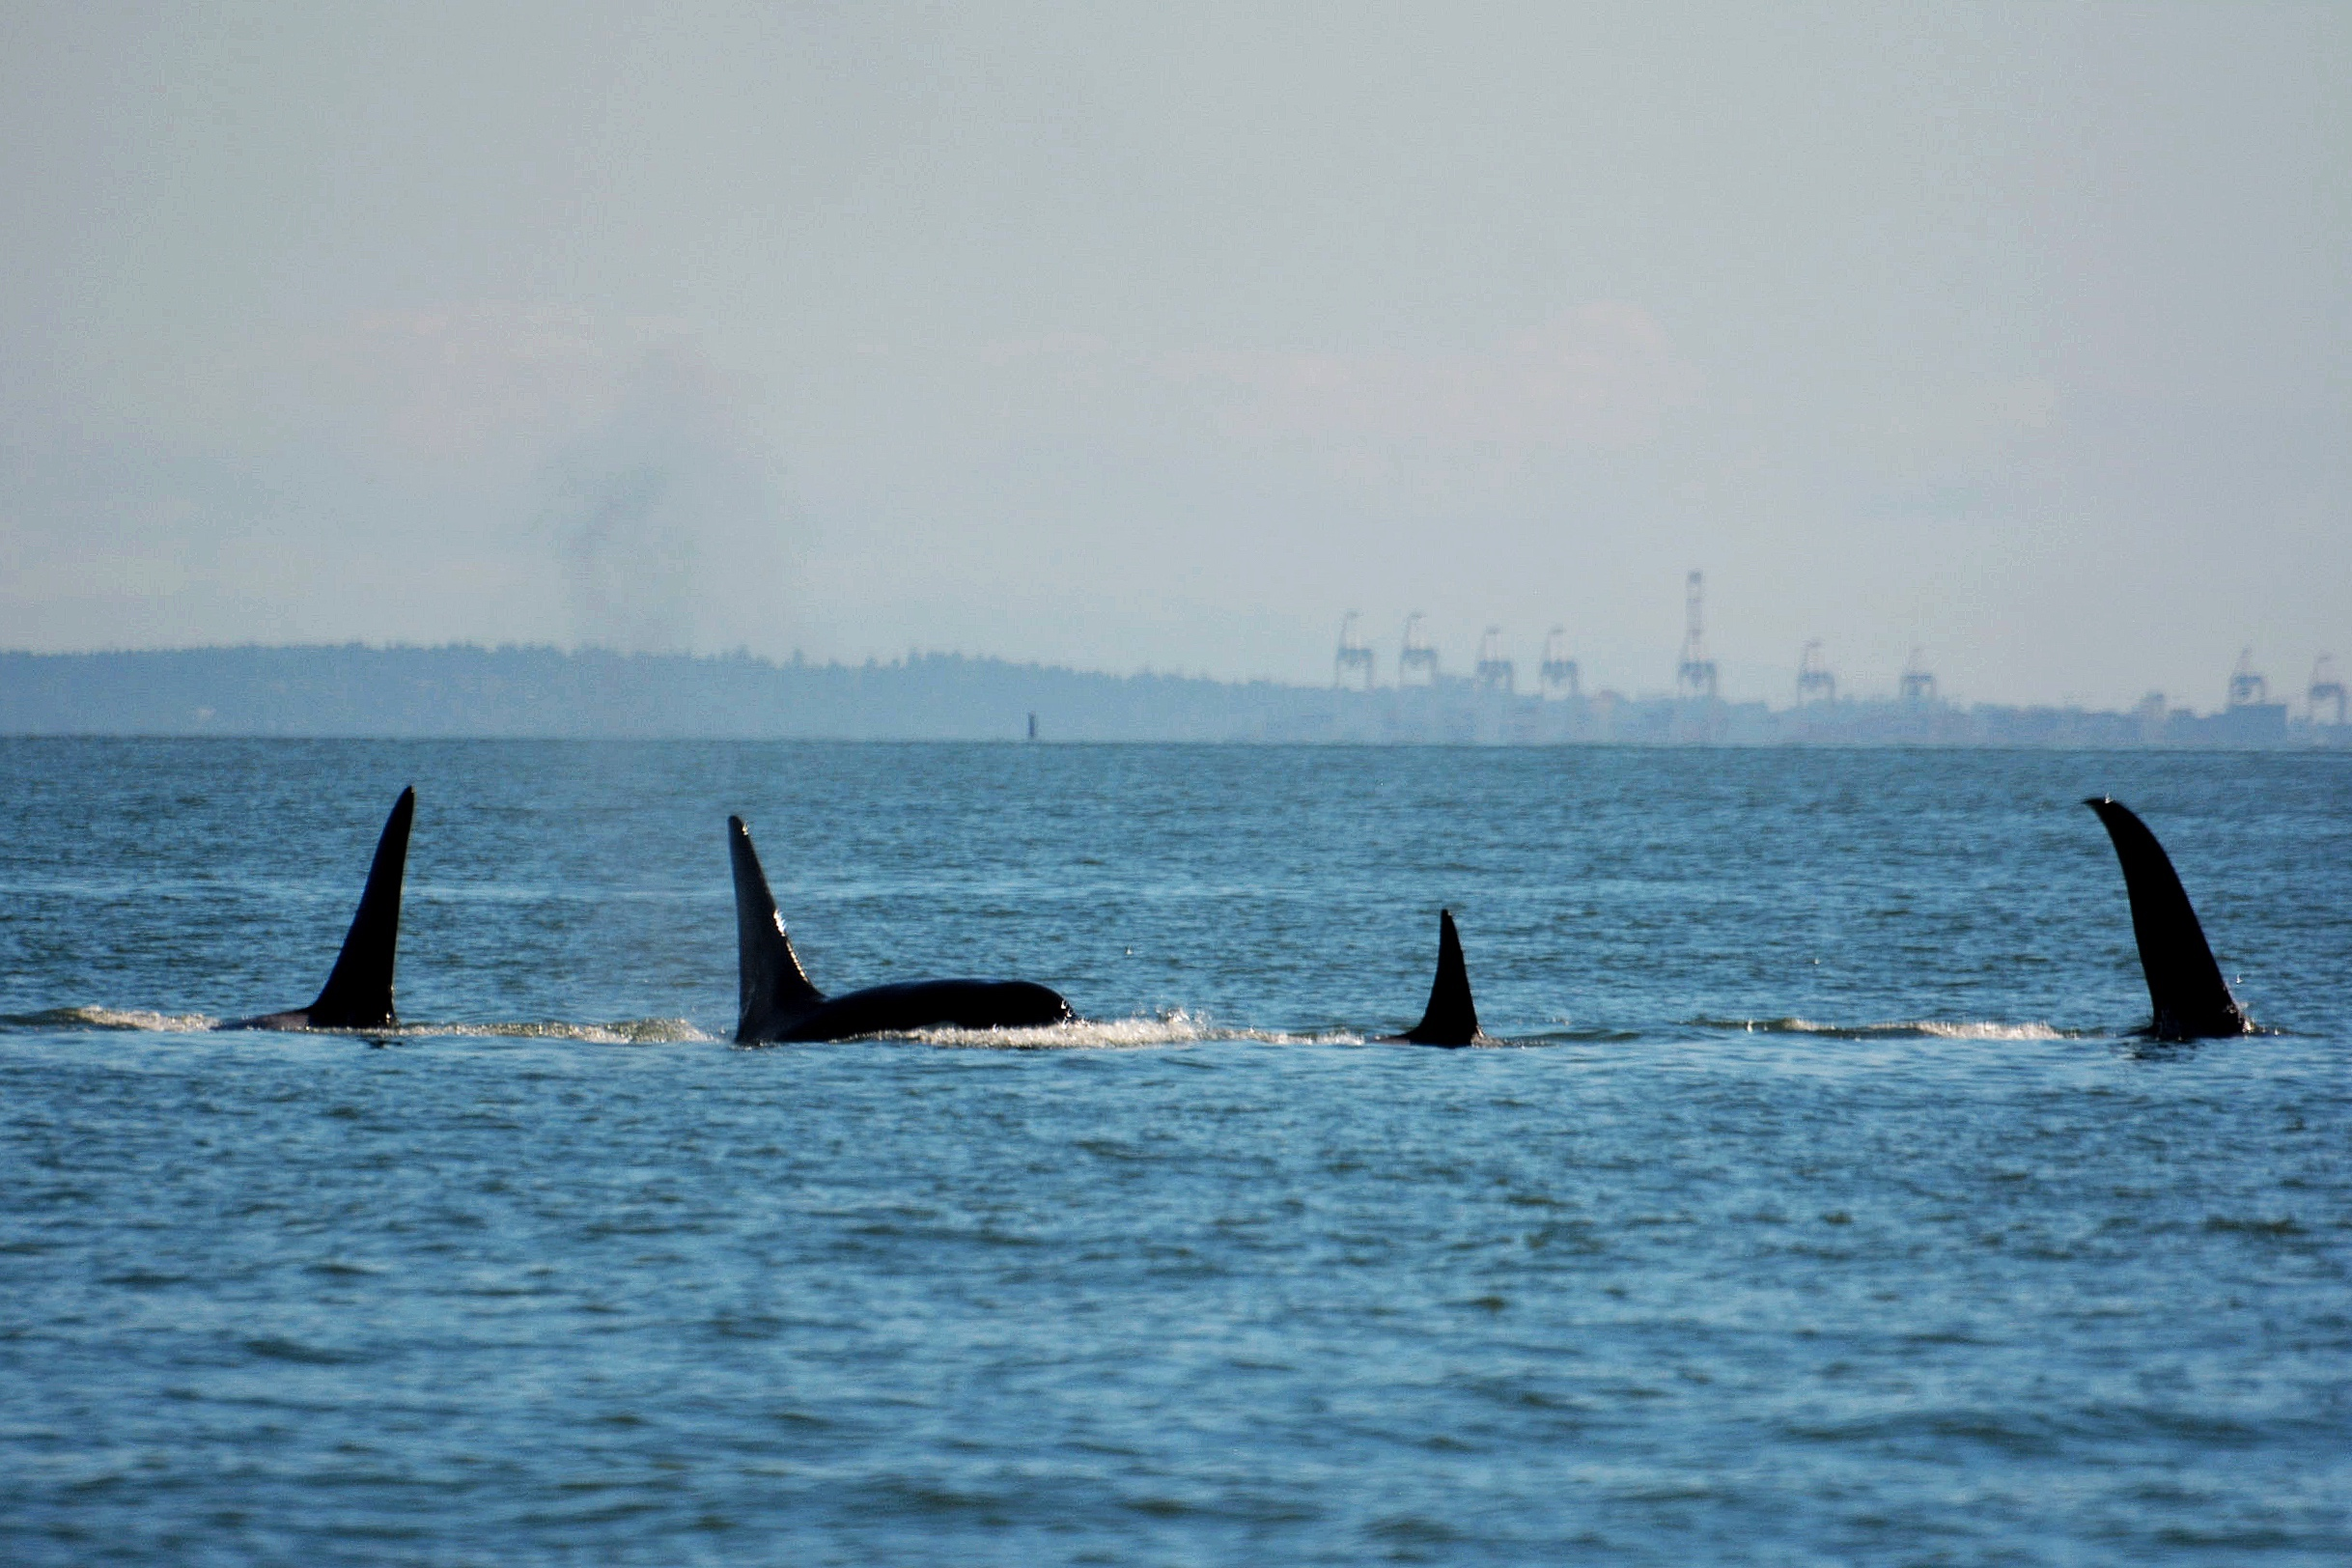 From left to right: Lagoon (T101B), Rush (T101A), Reef (T101), Beardslee (T102). Photo by Val Watson.